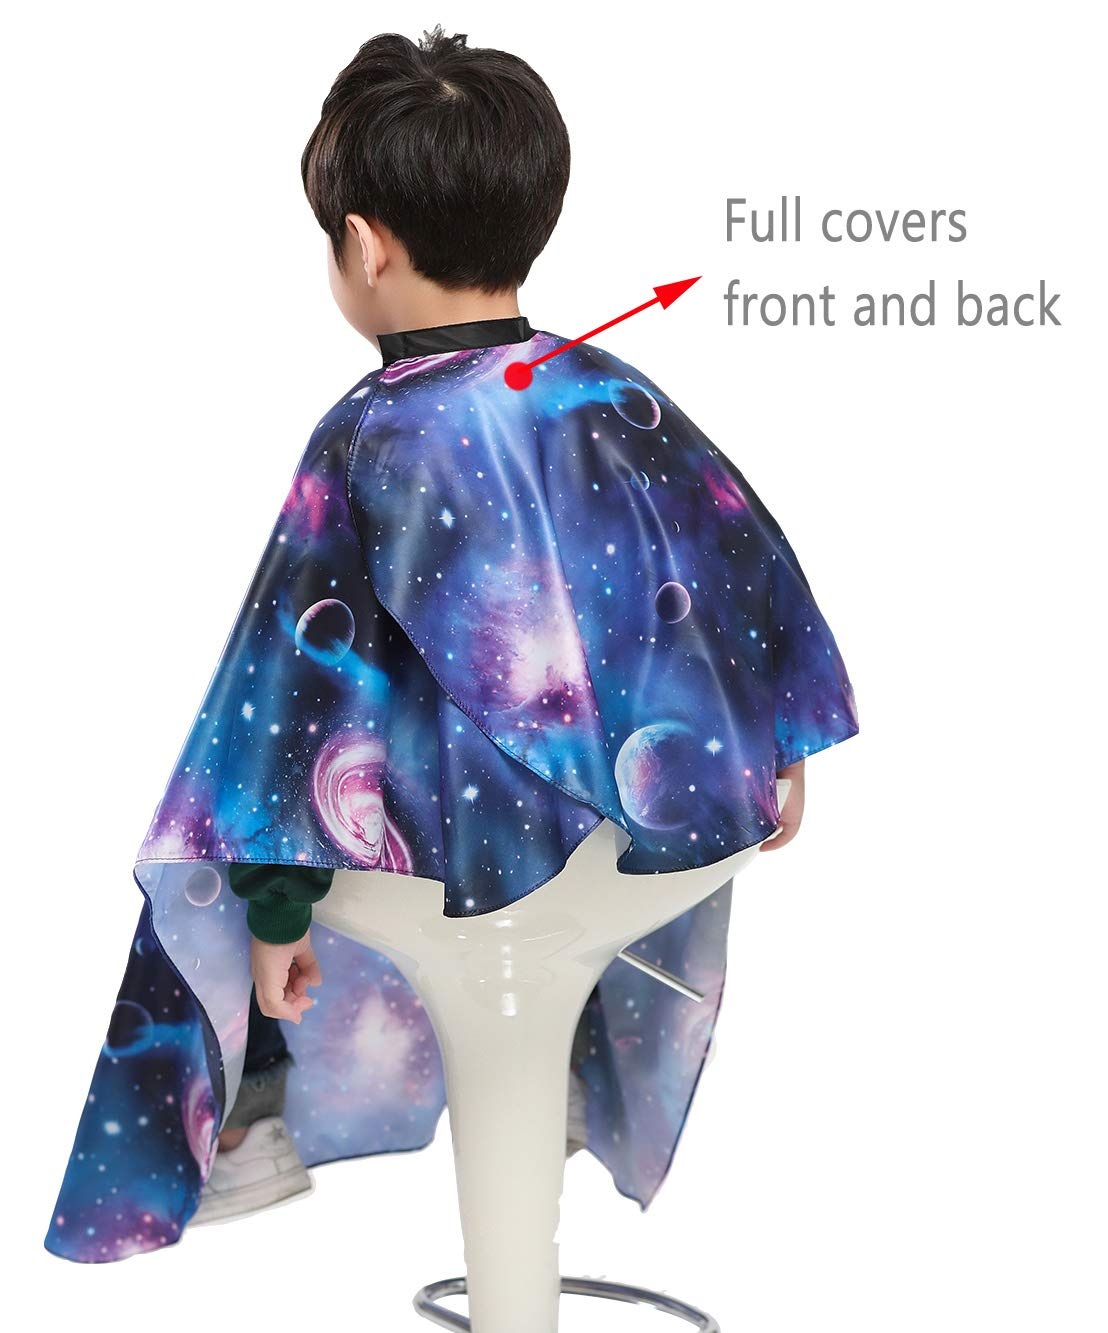 Kids Haircut Barber Cape Cover for Hair Cutting